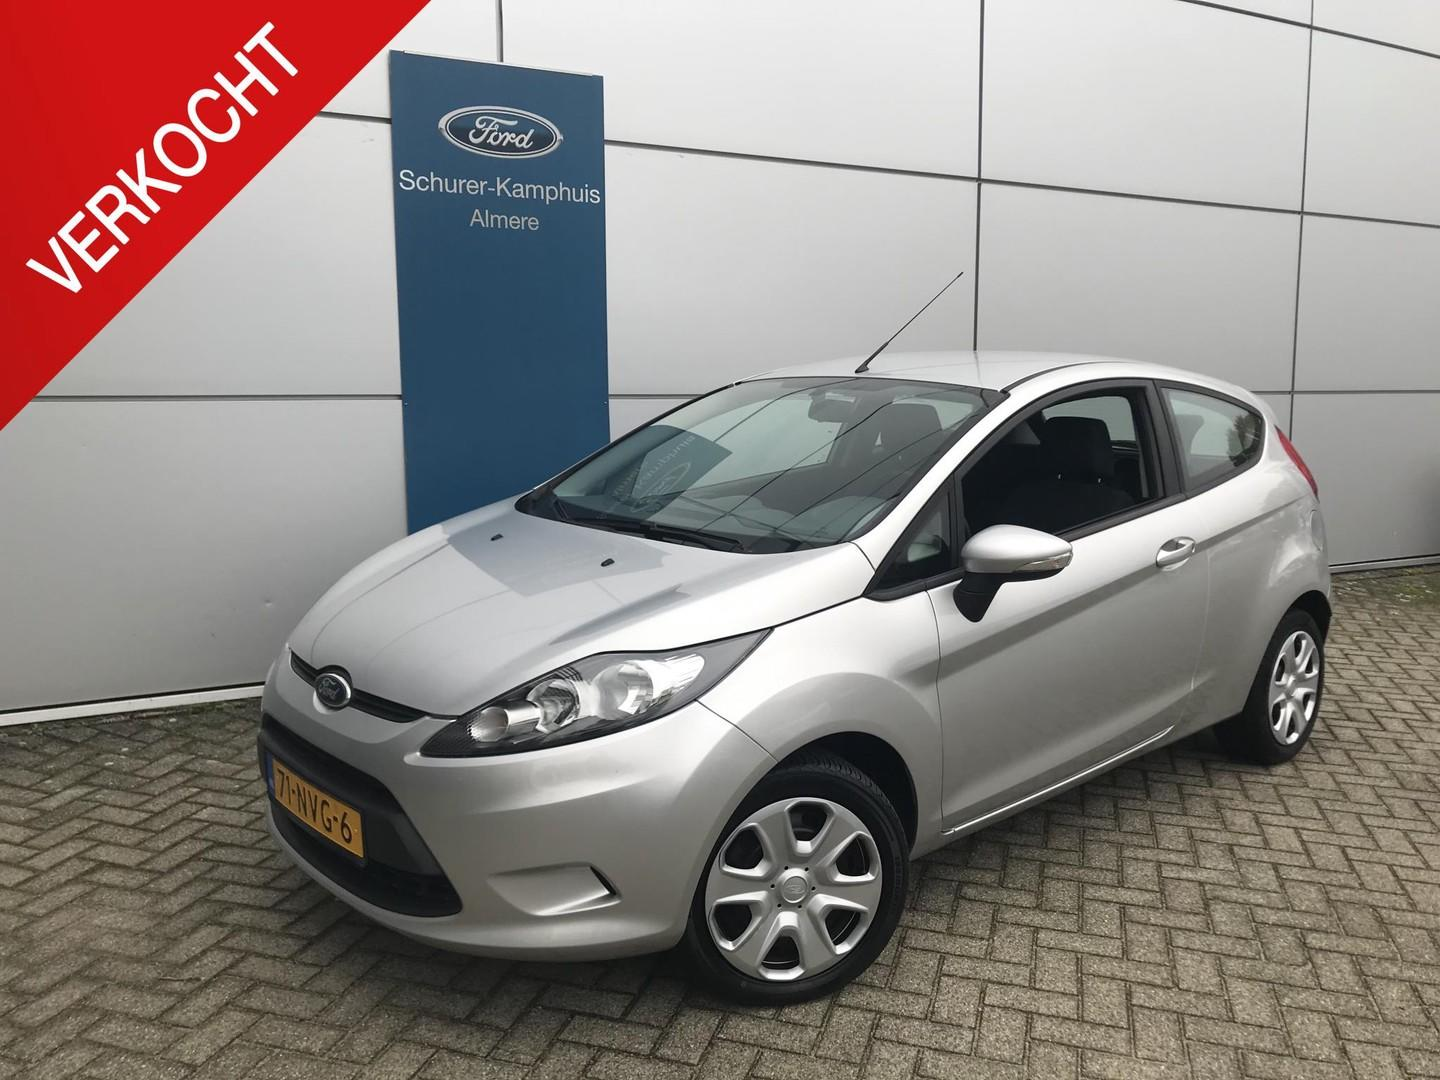 Ford Fiesta 1.25 limited airco 40.000km!